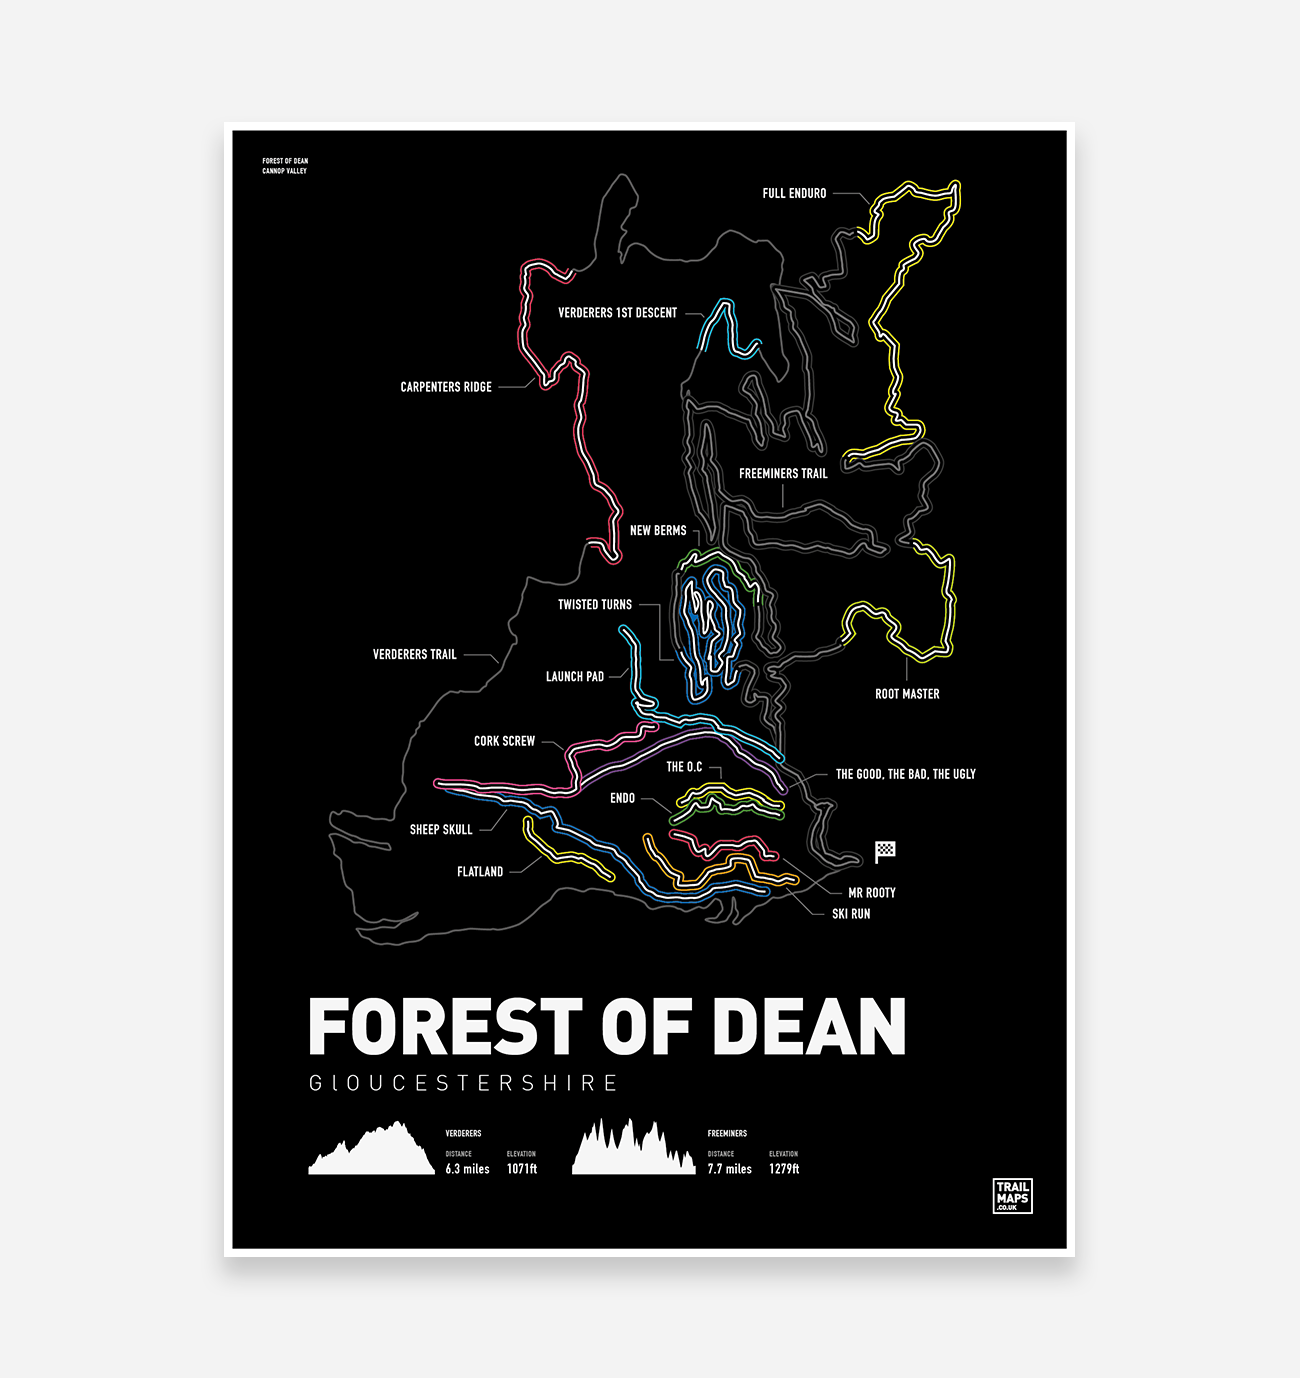 Forest of Dean Art Print - TrailMaps.co.uk